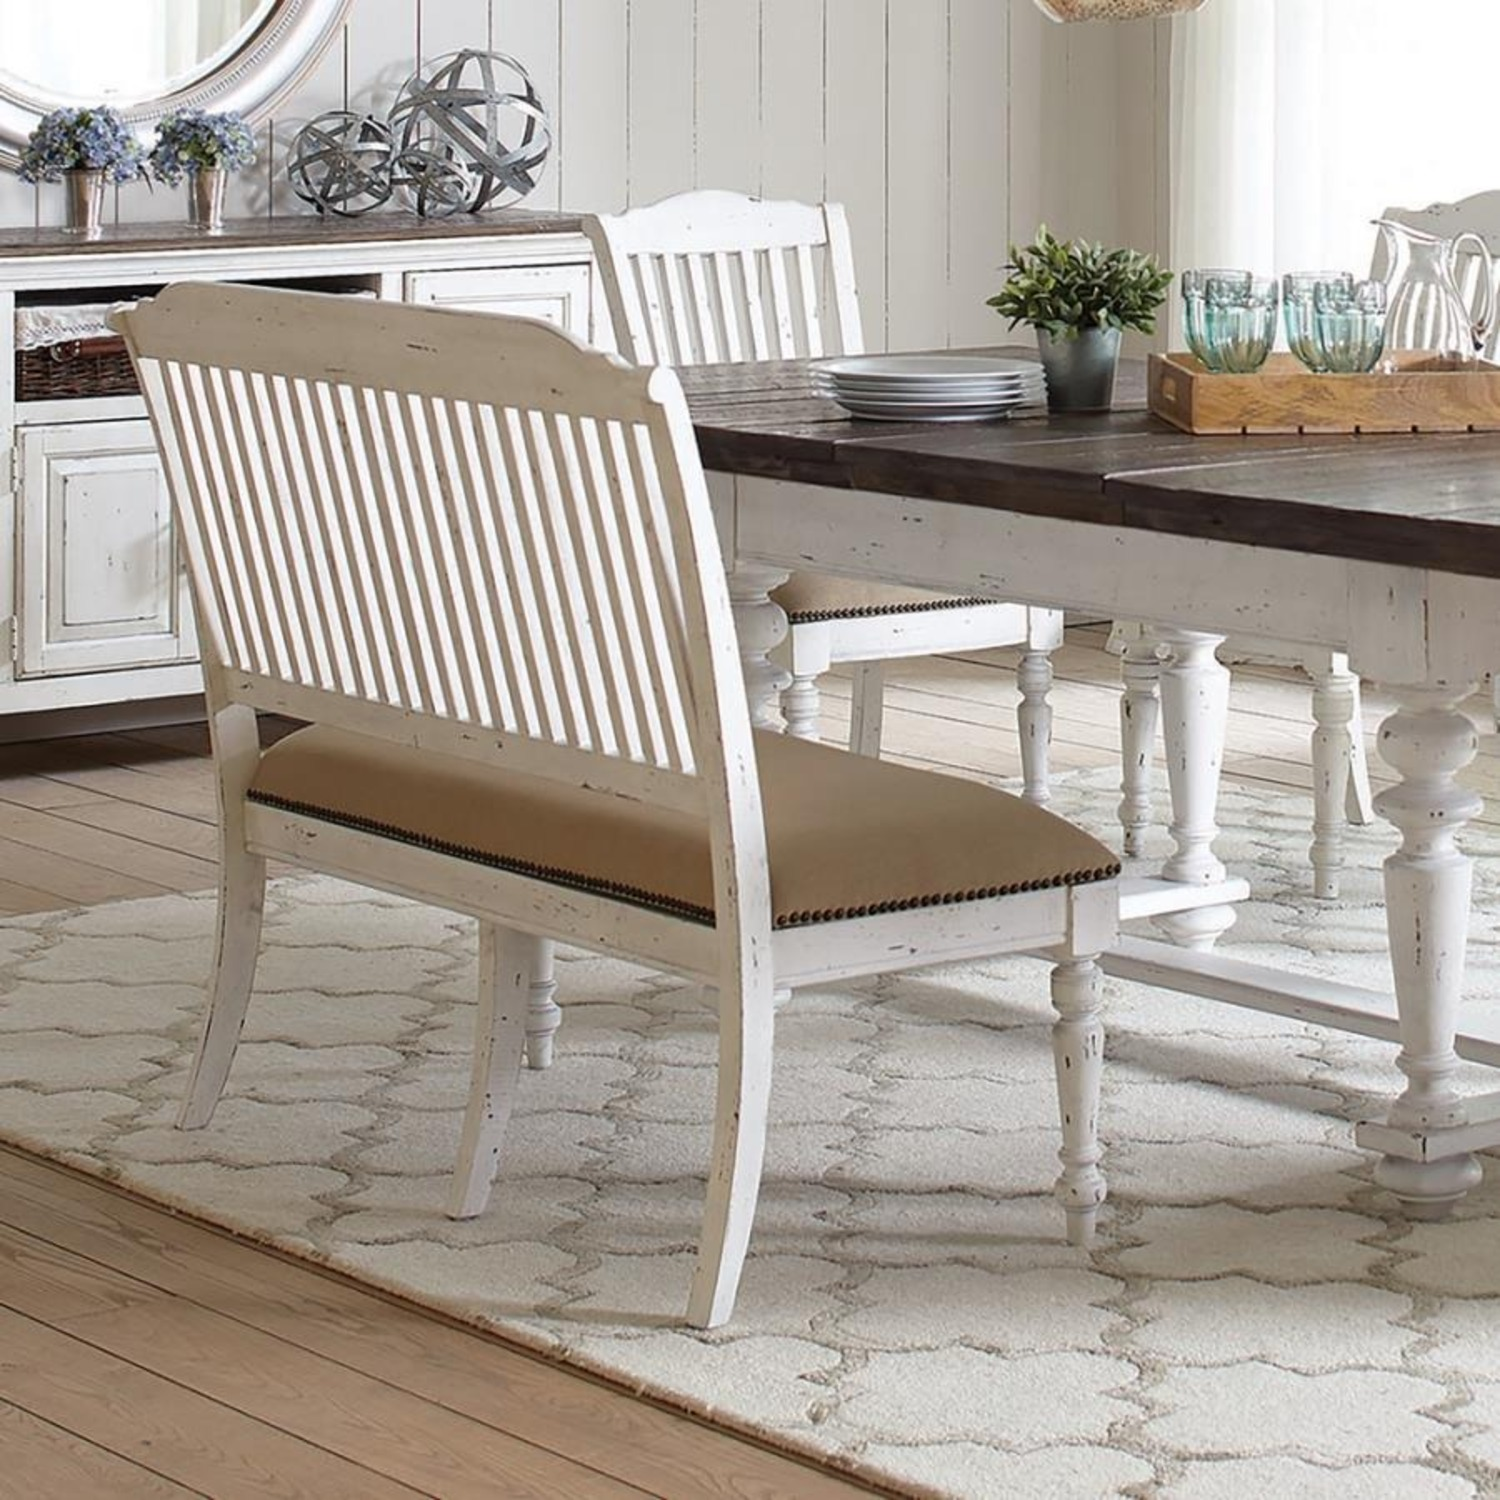 Bench In White Finish W/ Stick-Back Seating - image-6